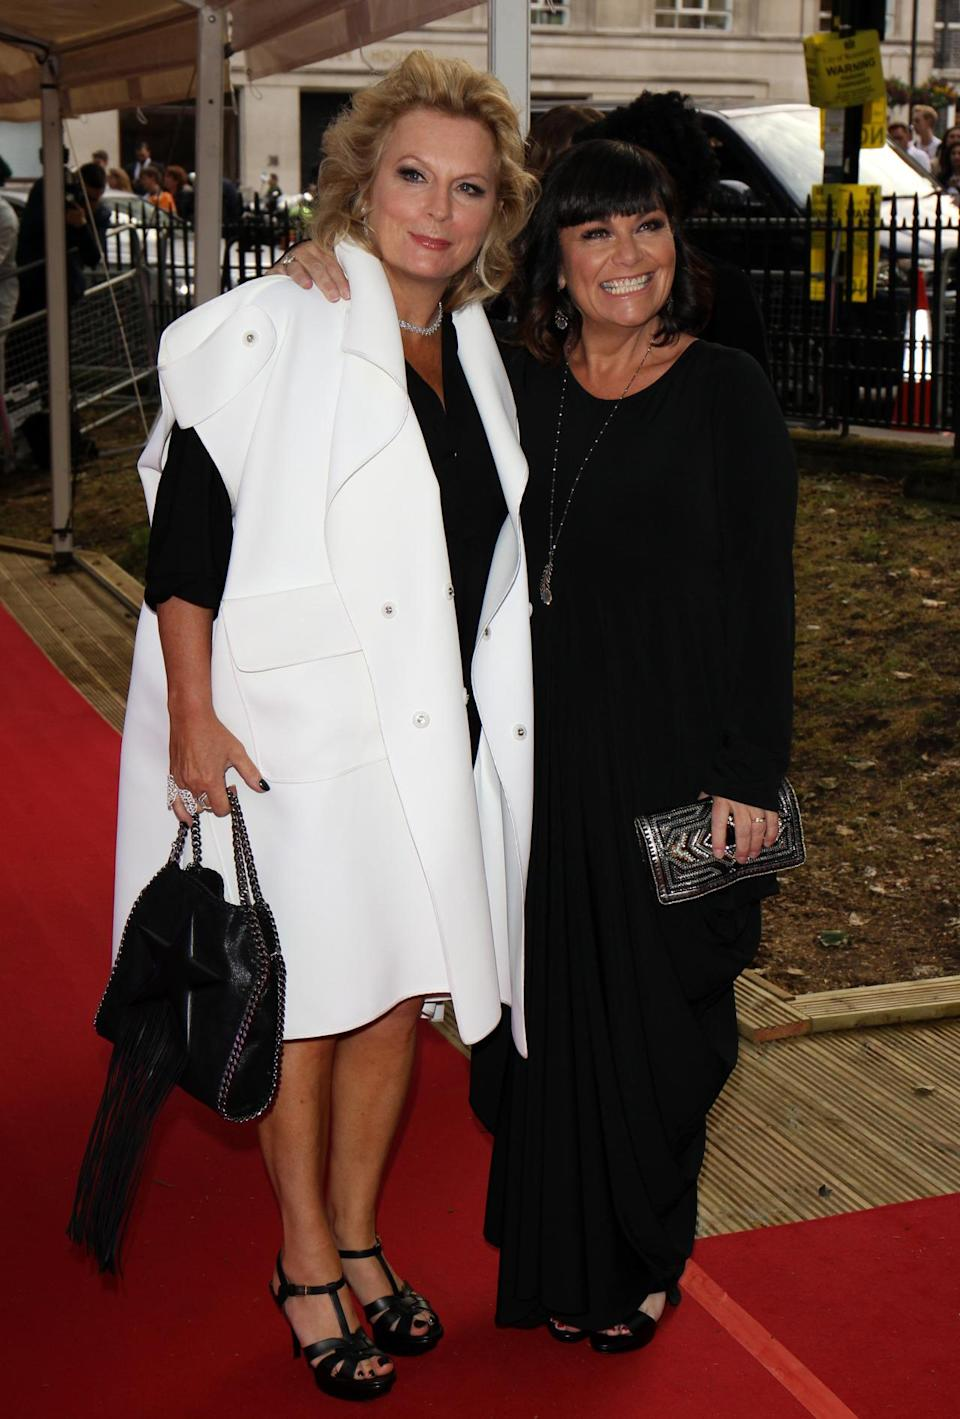 <p>Jennifer Saunders turned up with Dawn French in matching monochrome ensembles. Obviously, the two ditched the Glamour photo call and instead just photobombed Kourtney Kardashian.<i> [Photo: Rex Features]</i><br></p>